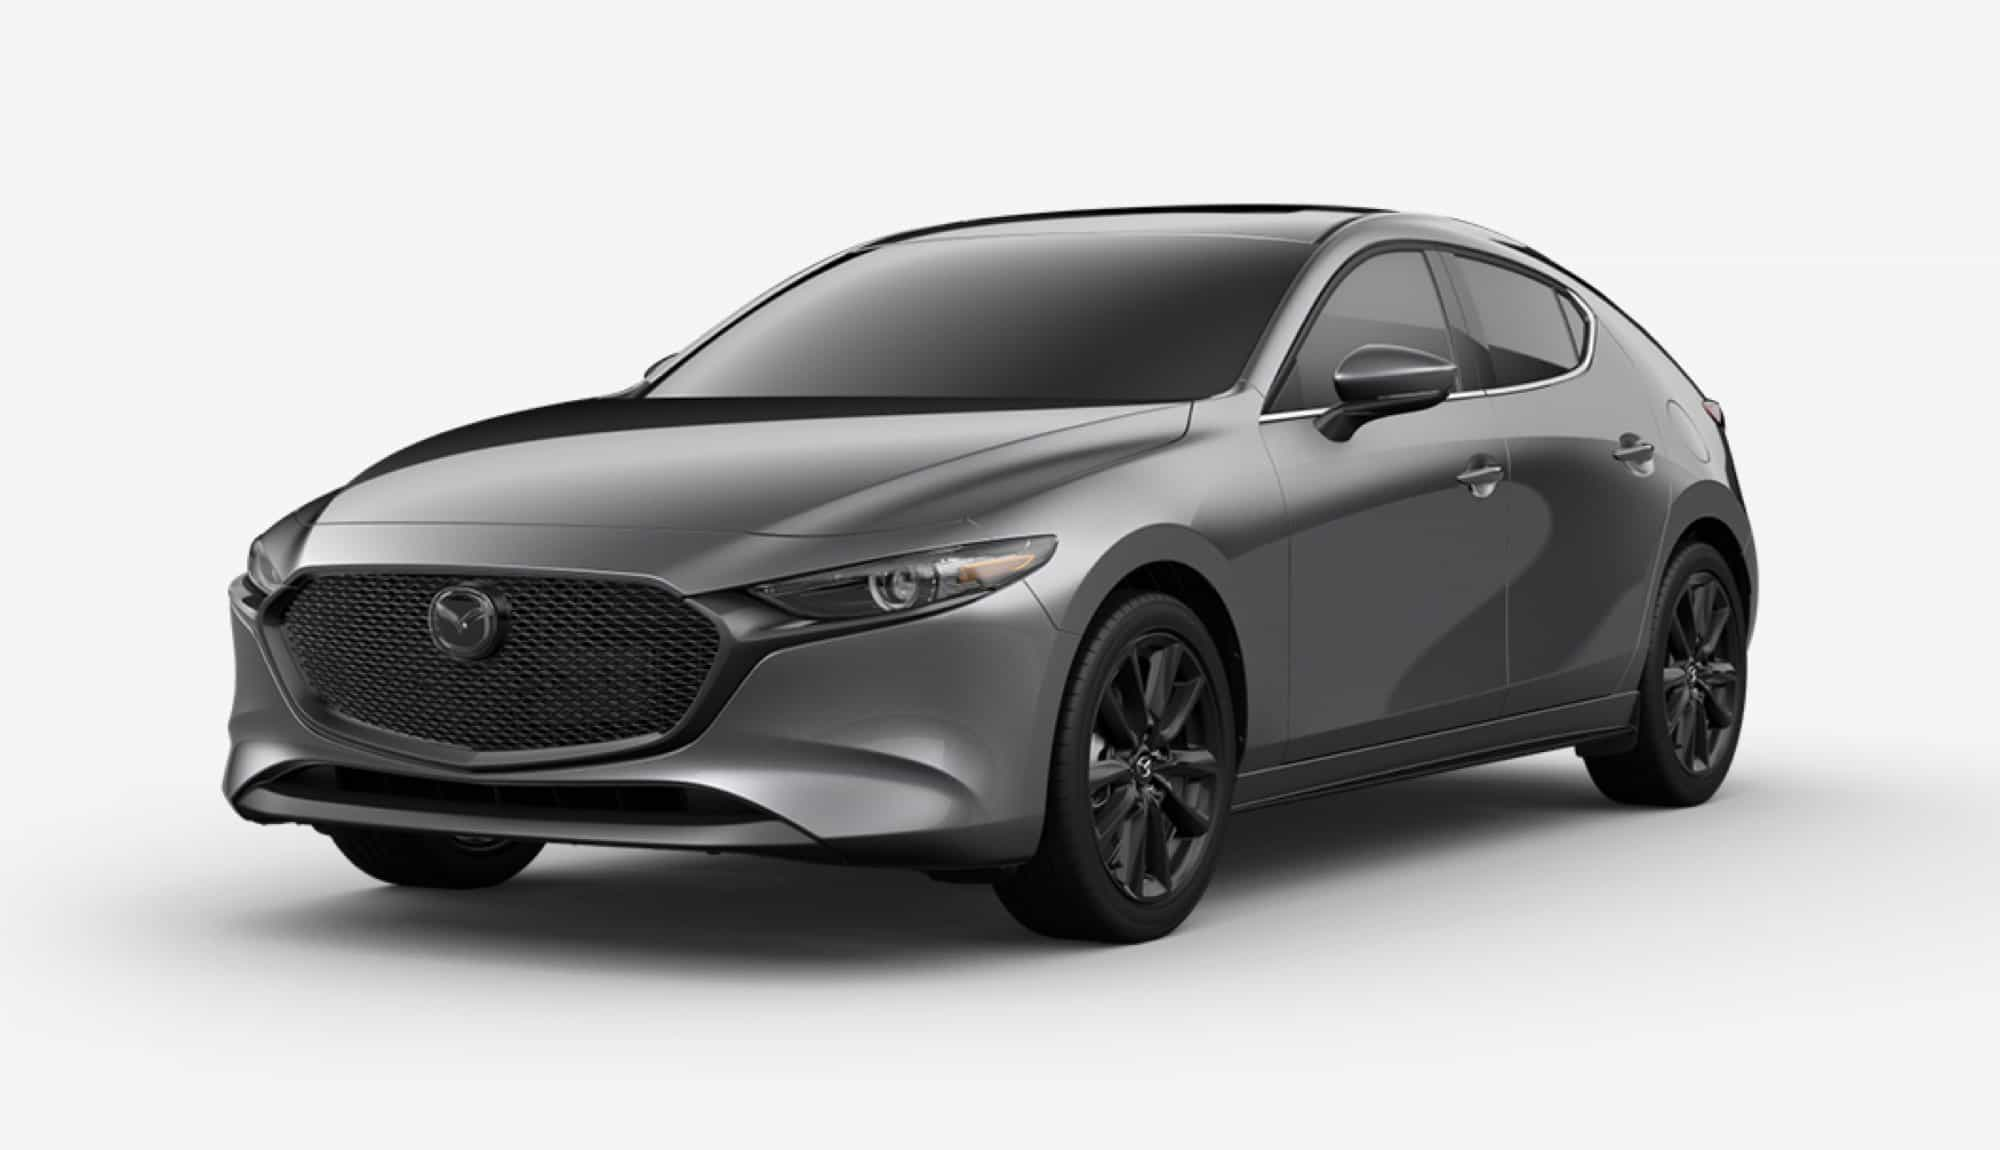 2020 Mazda3 Hatchback, Machine Gray Metallic